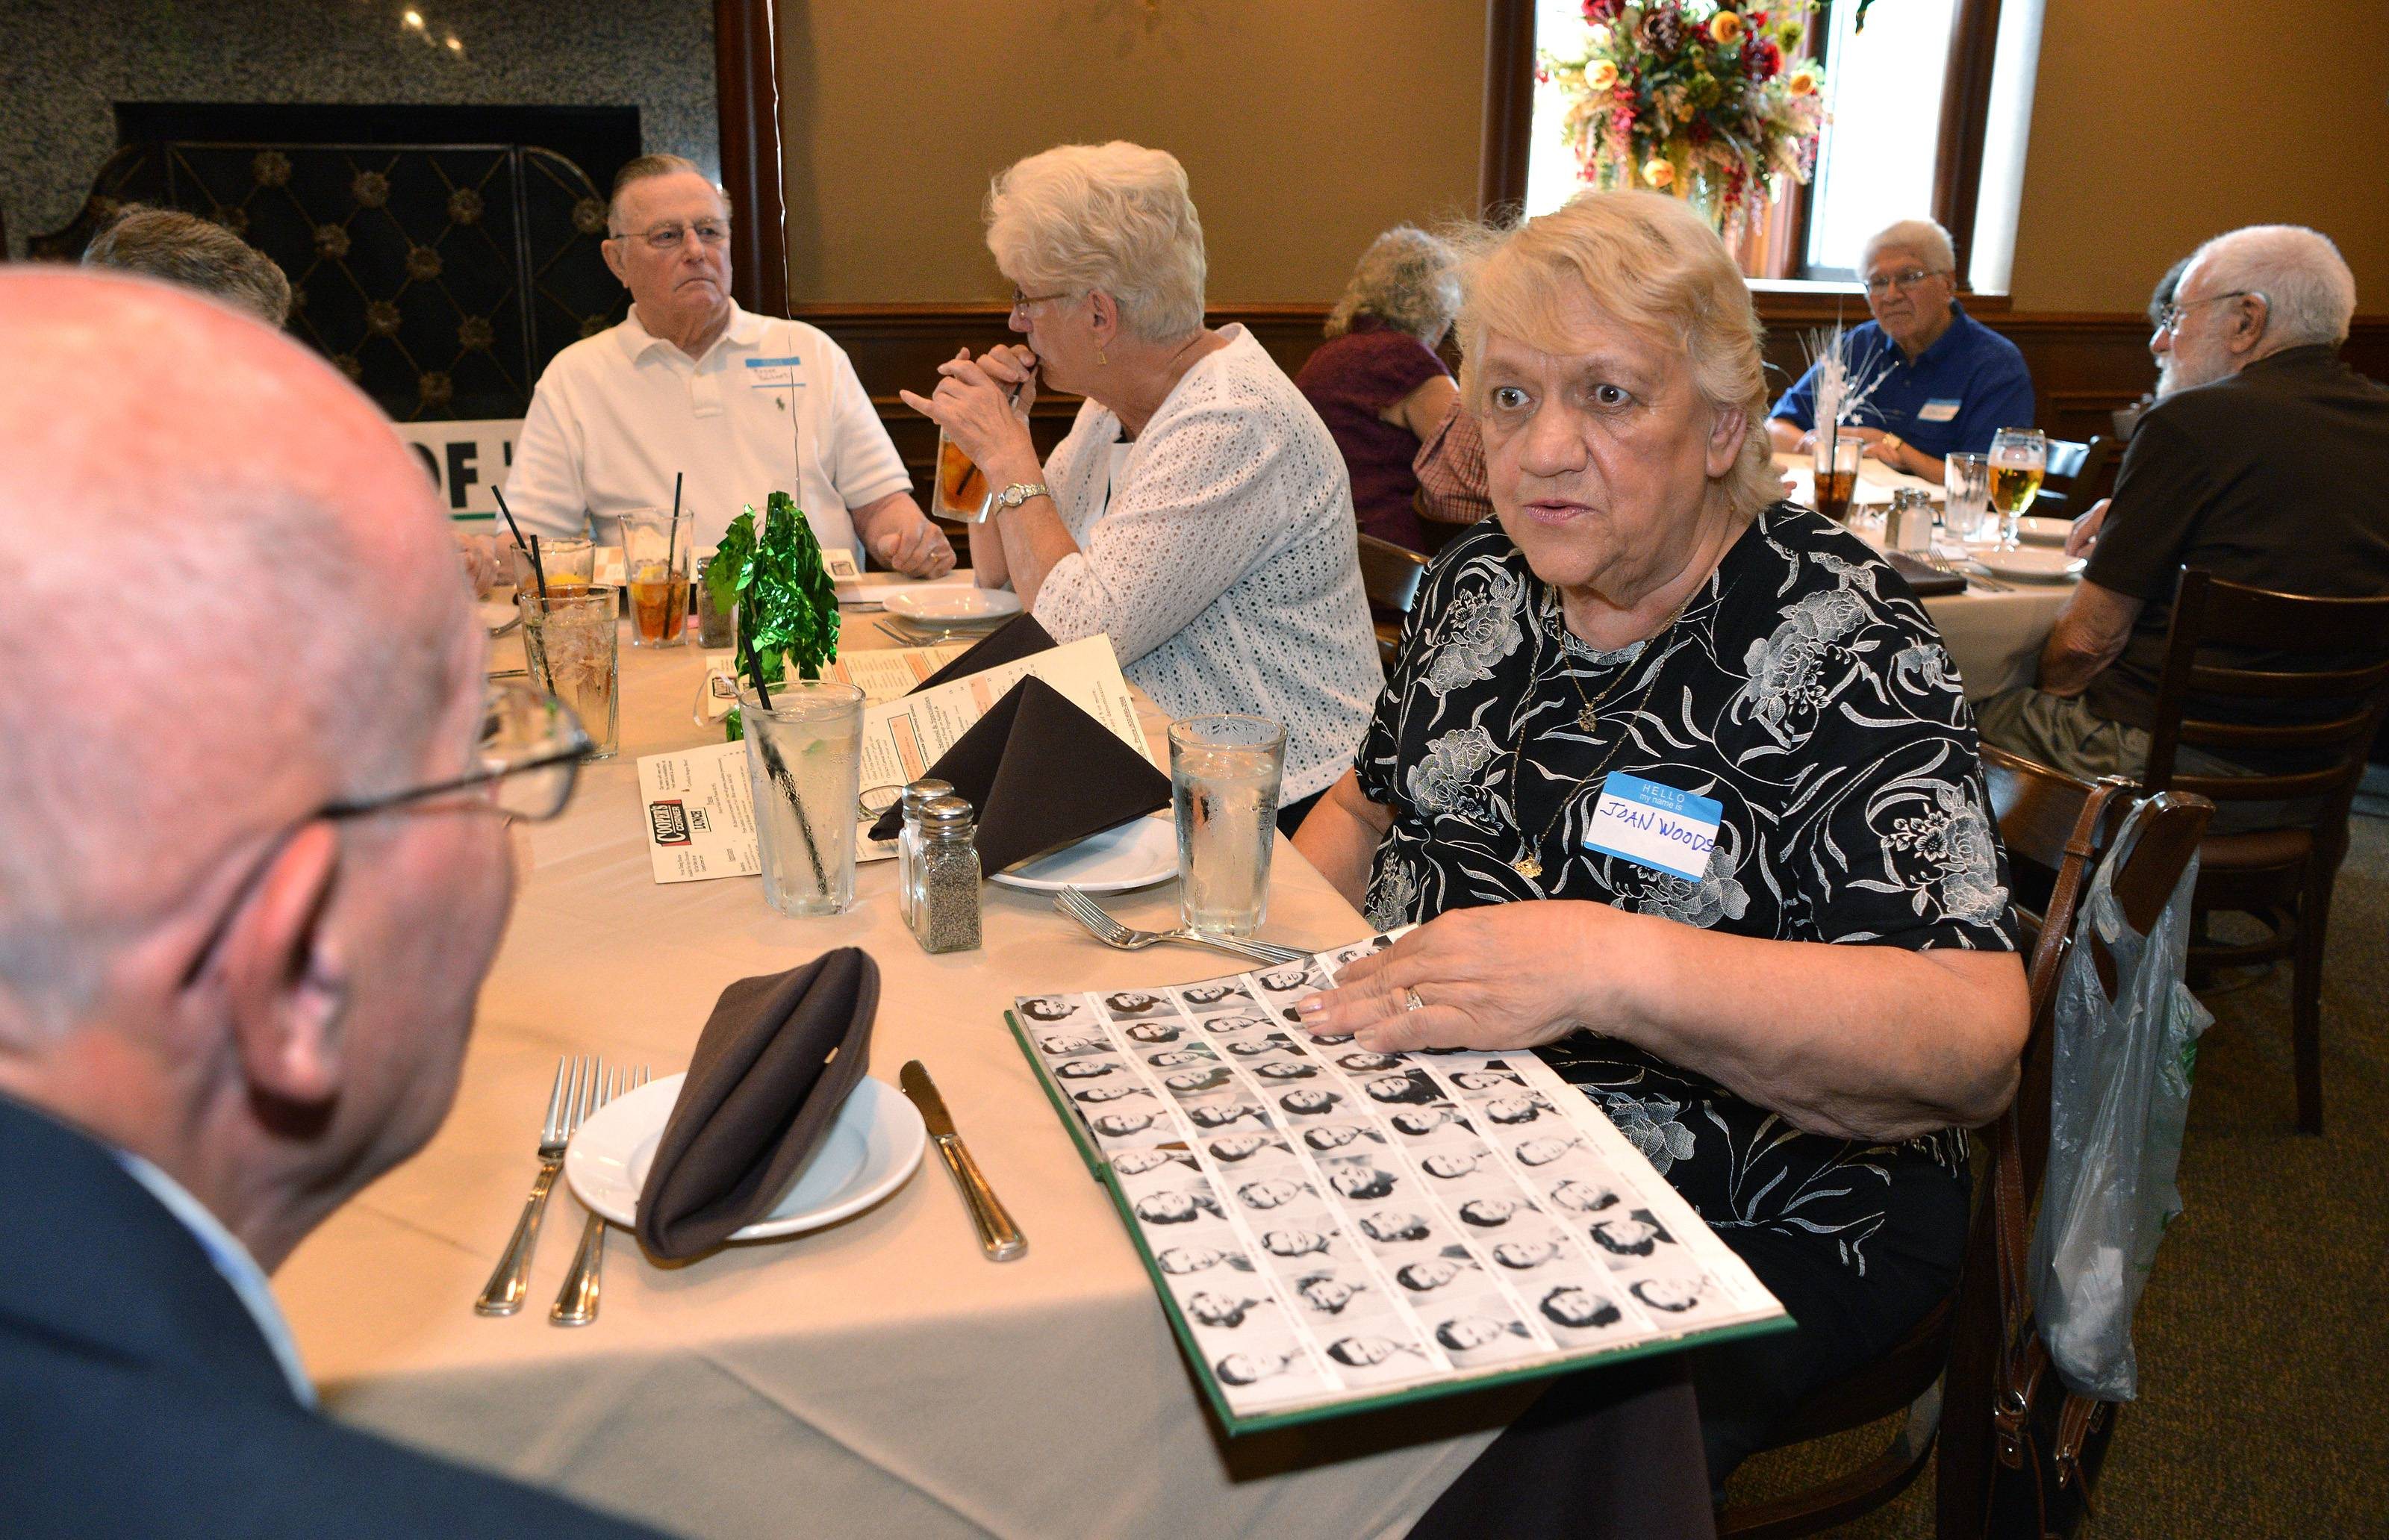 Glenbard West High School Class of 1952 graduates Cal Smith, left, and Joan Woods look at photos in her yearbook during a reunion Friday in Winfield. Roughly 25 classmates came to a luncheon at Cooper's Corner restaurant to celebrate their 80th birthdays.